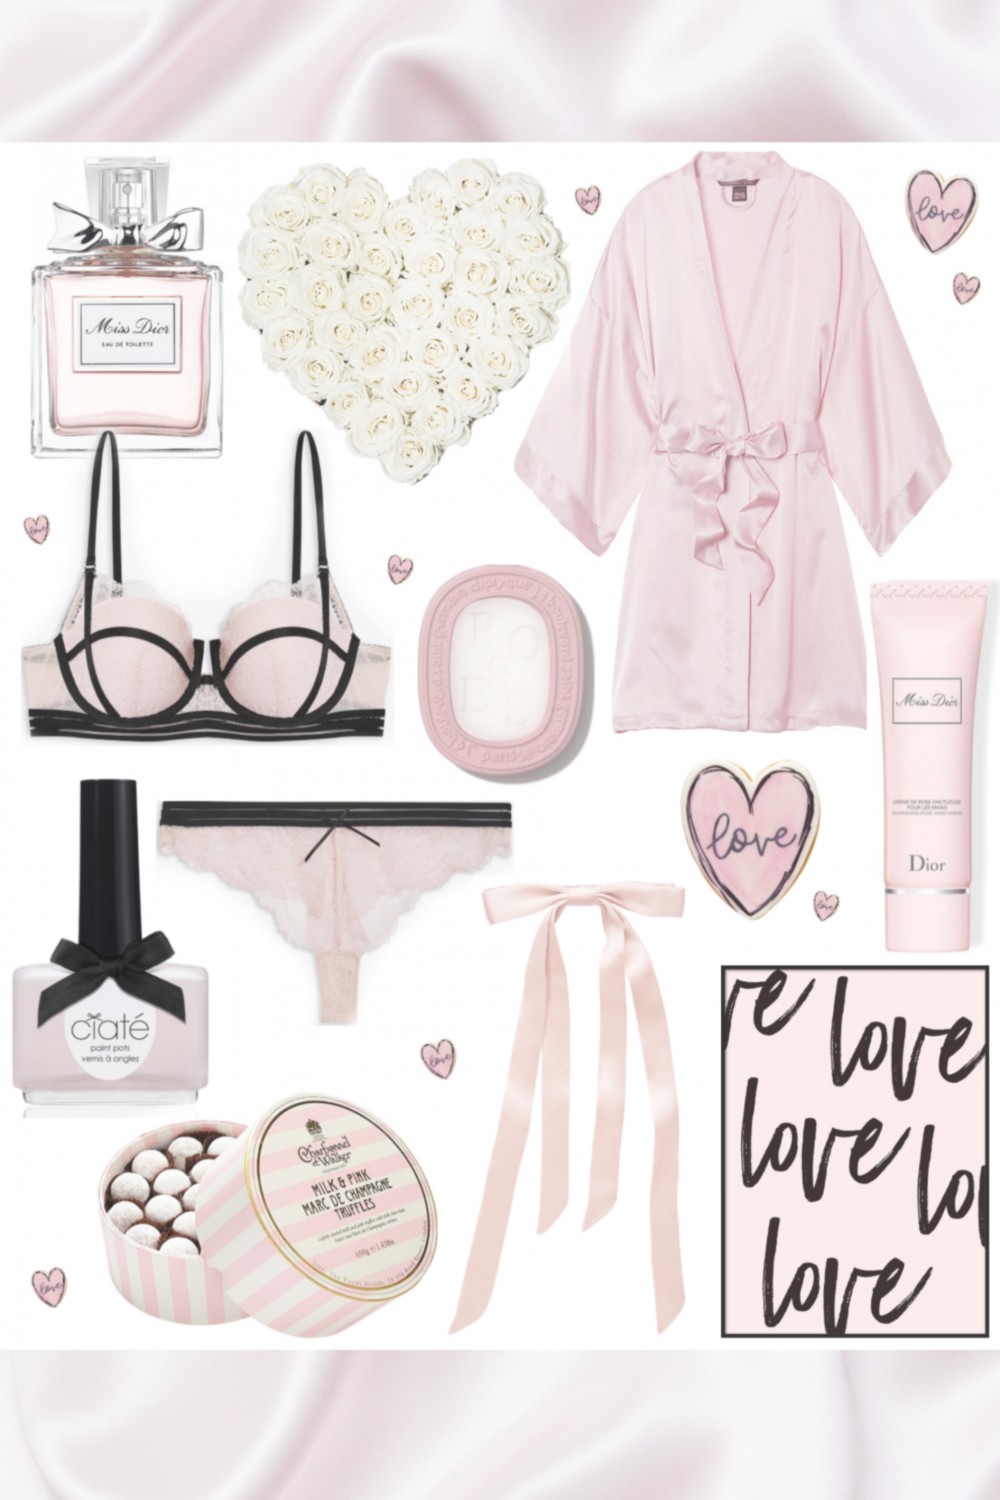 To Me, Love Me: Gifts To Treat Yourself On Valentine's Day